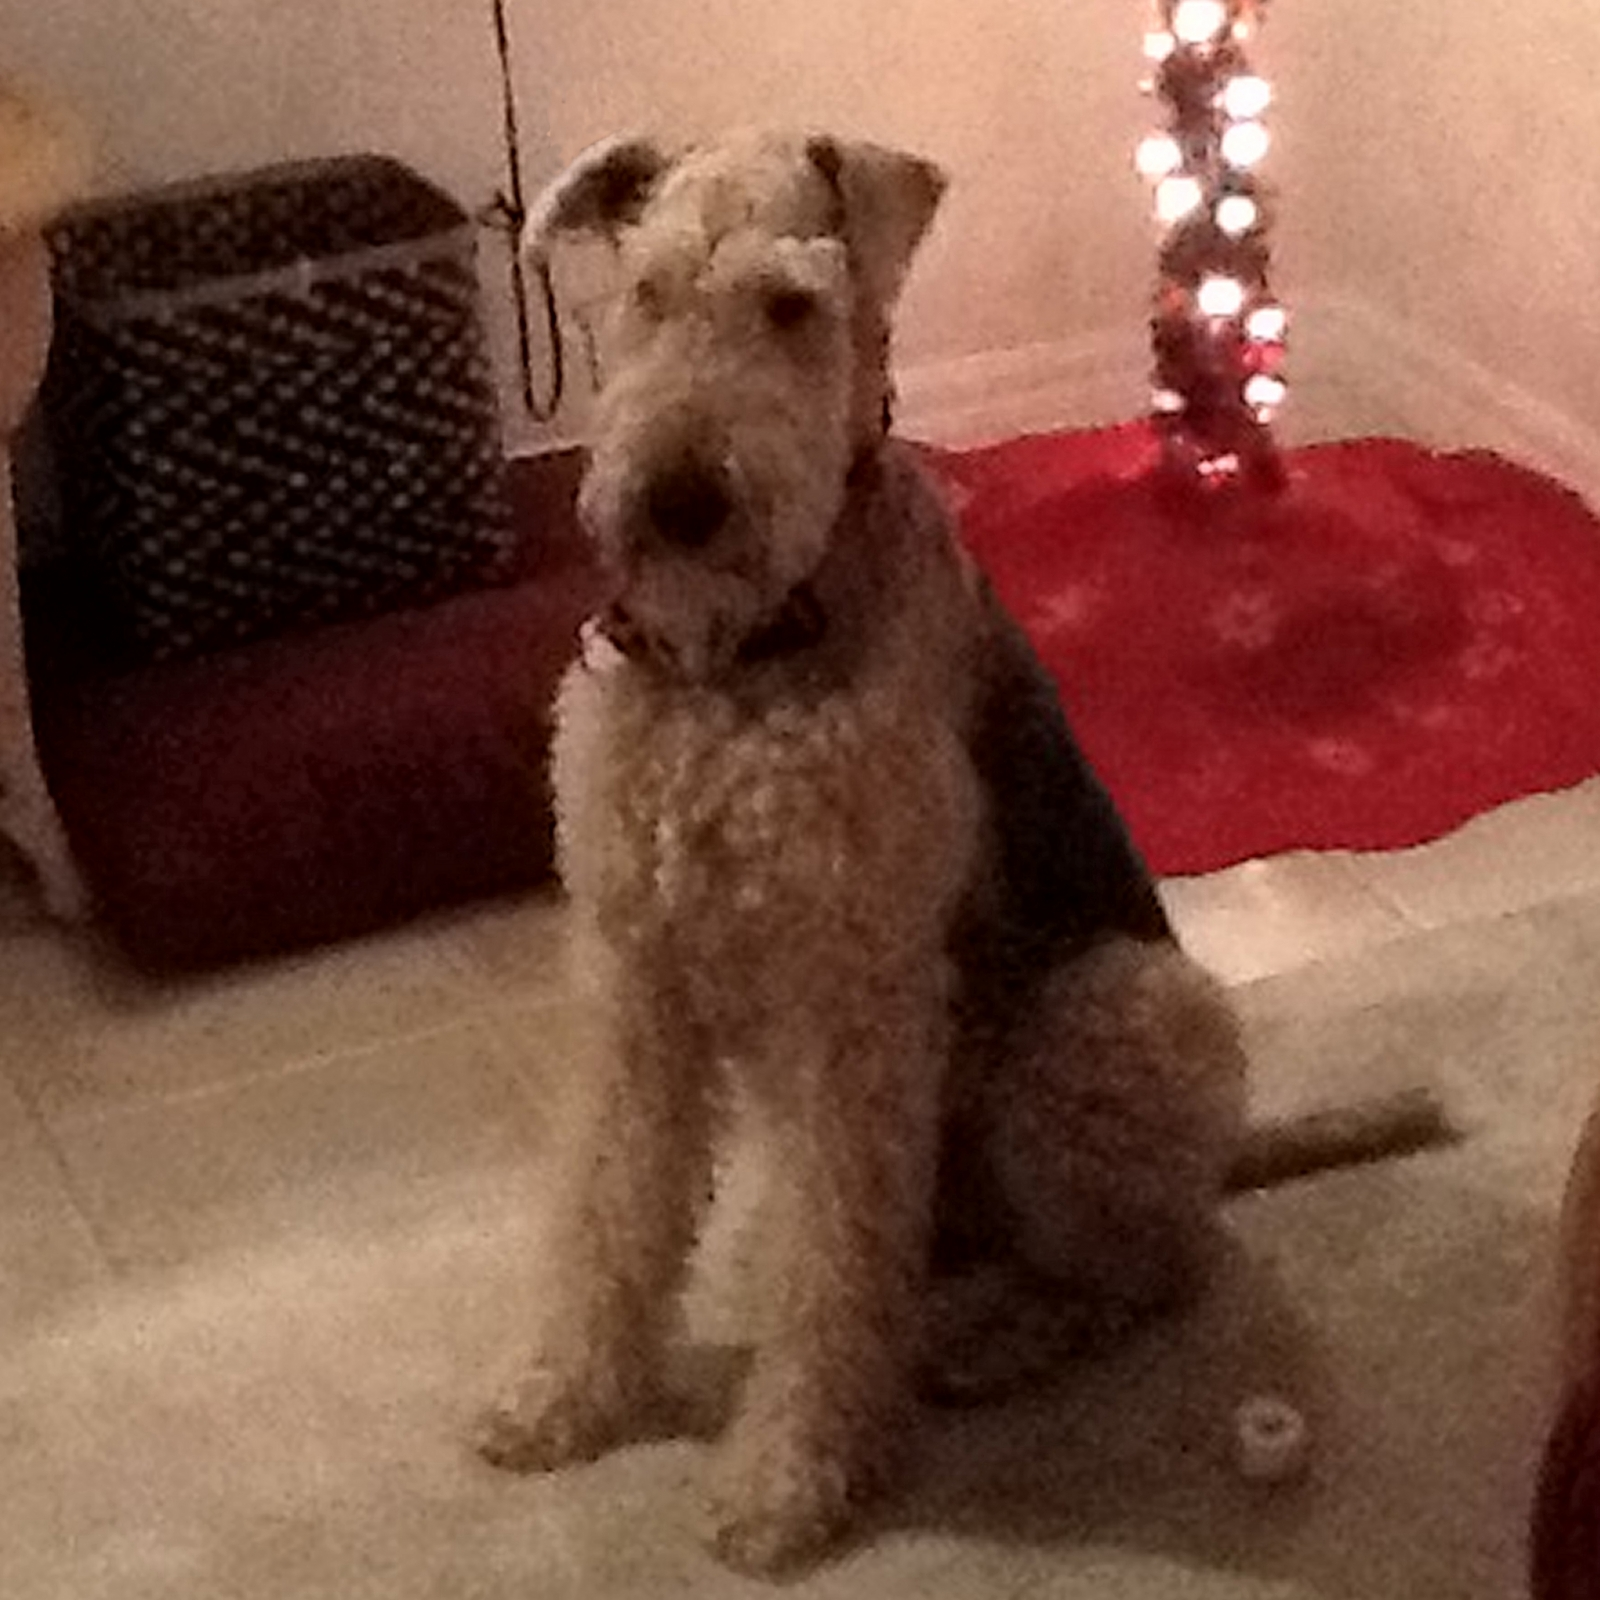 ATRA - Airedale Terrier Rescue & Adoption | Finding loving ...